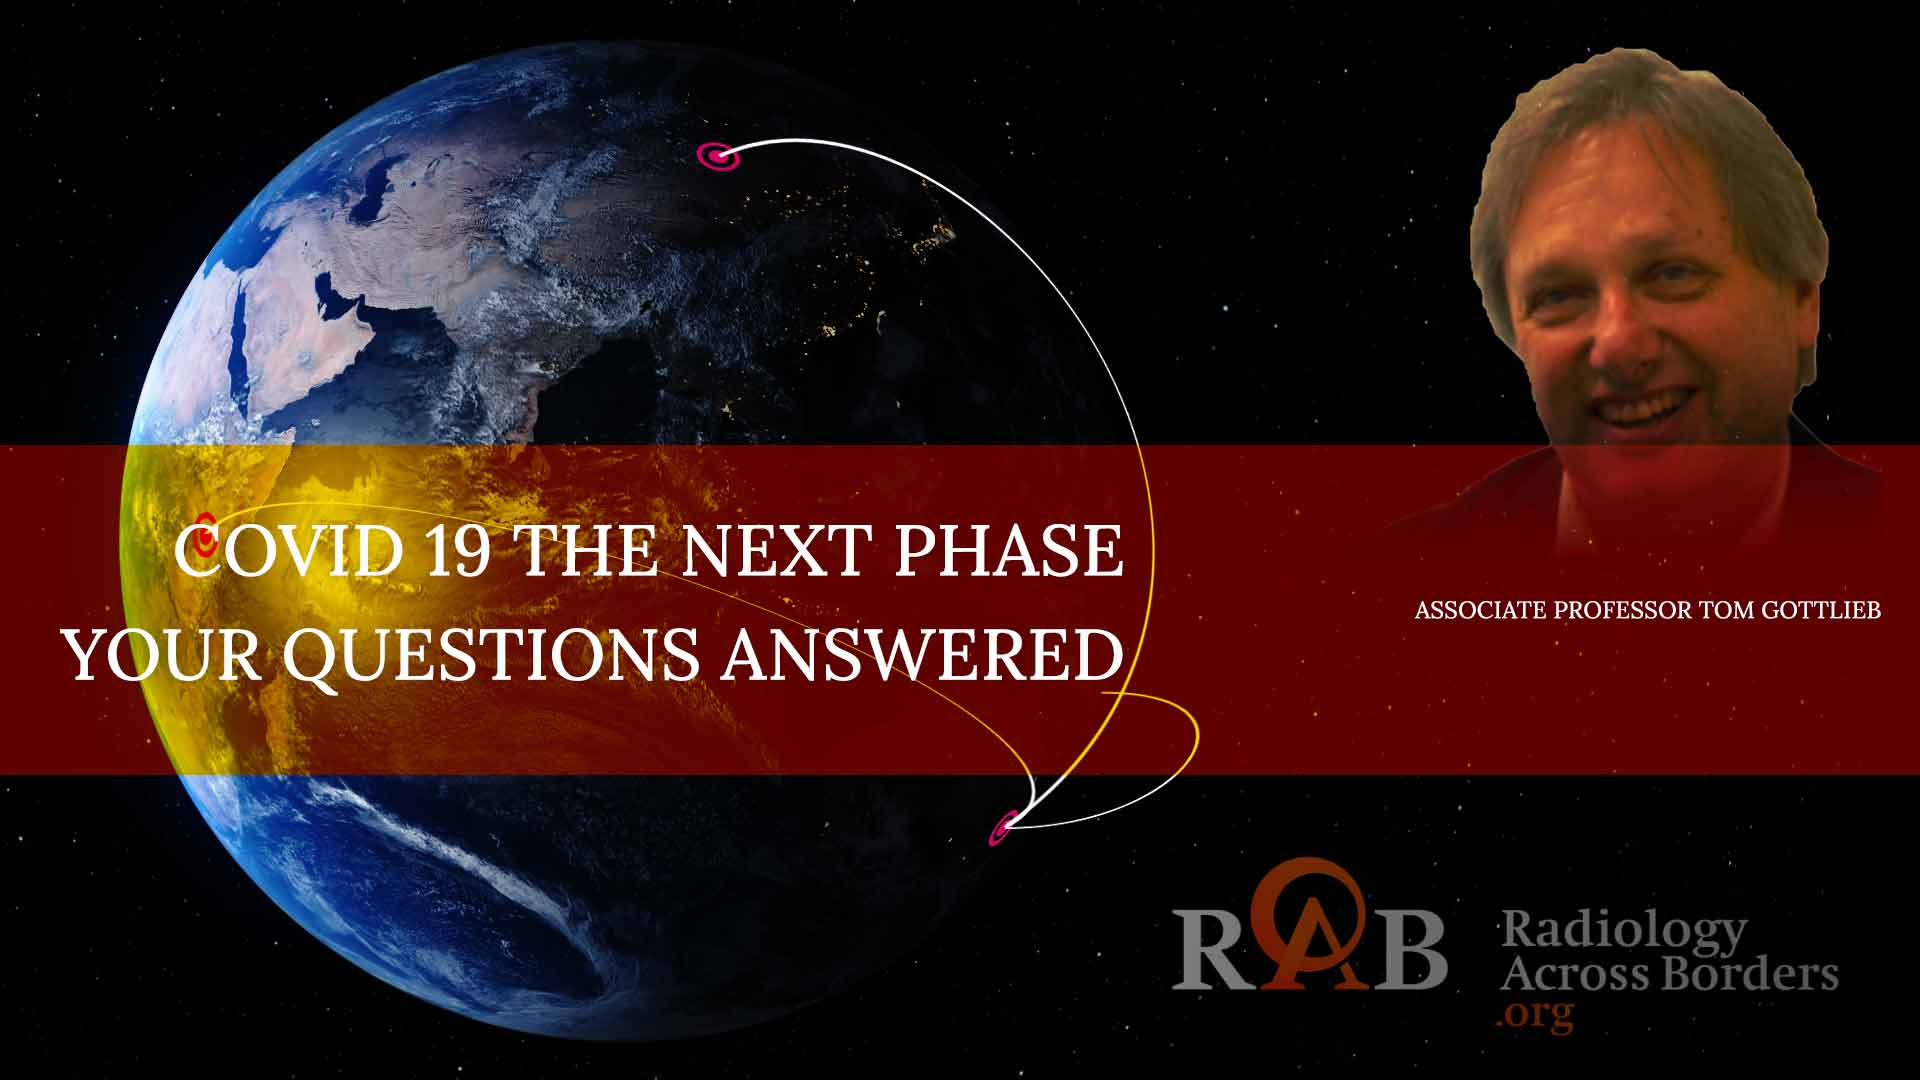 Covid 19 the Next phase - Your Questions Answered